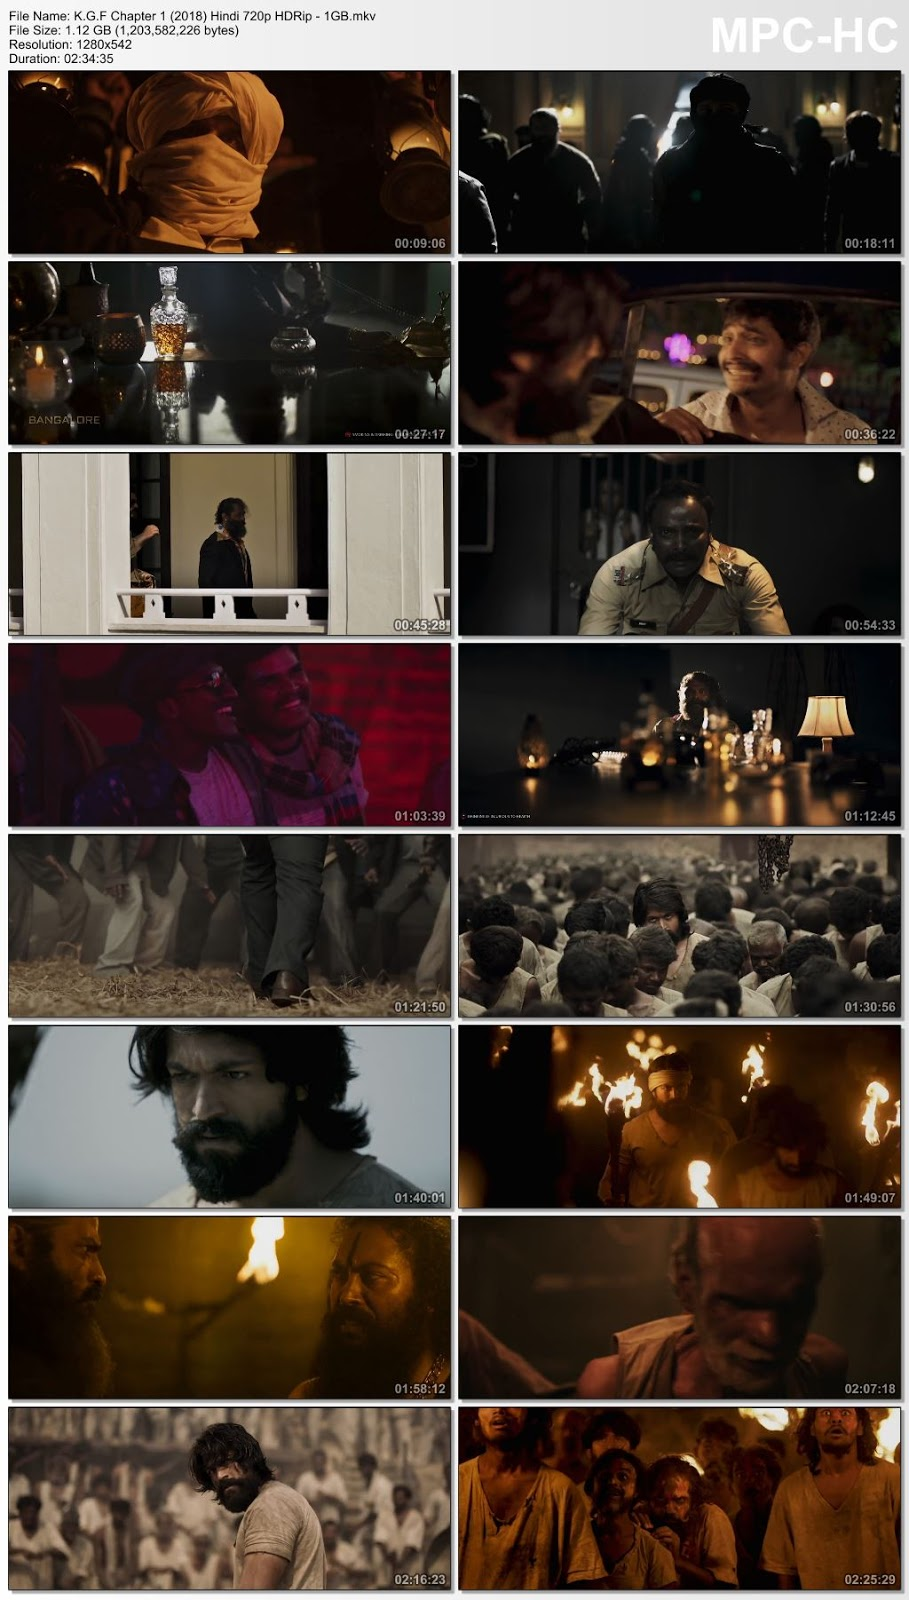 KGF Chapter 1 (2018) Hindi Dubbed 720p HDRip 1GB Desirehub